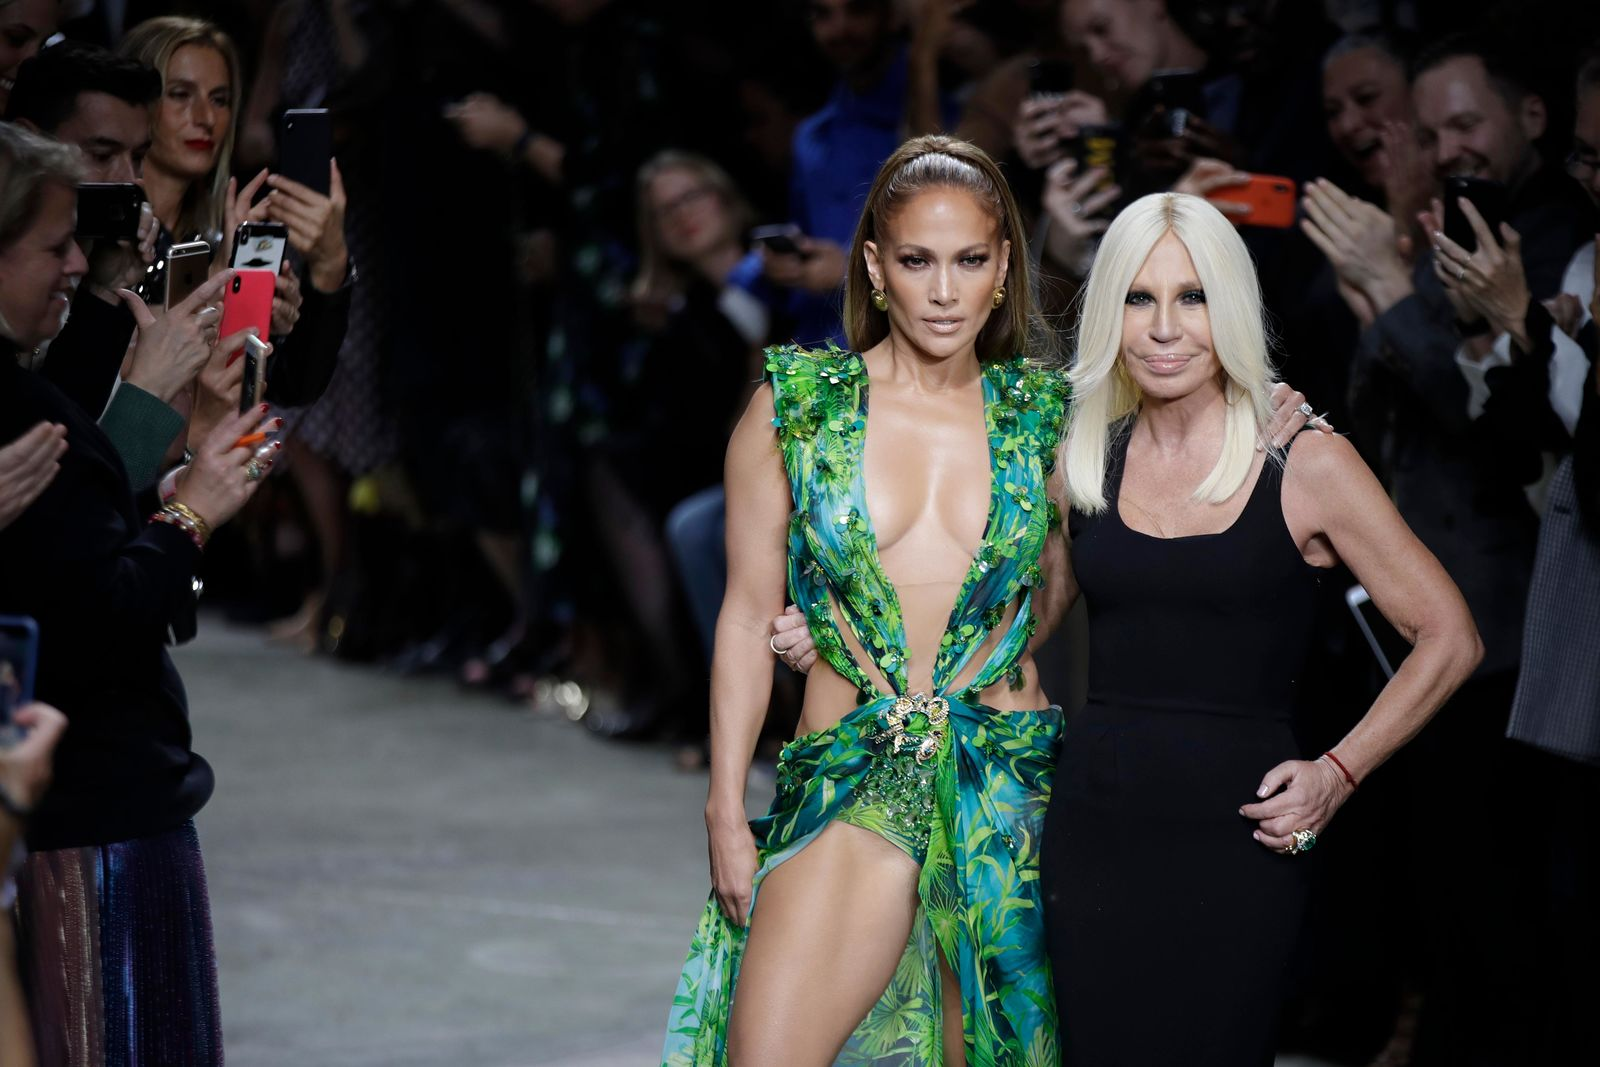 Actress Jennifer Lopez, left, and designer Donatella Versace accept applause at the conclusion of the Versace Spring-Summer 2020 collection, unveiled during the fashion week, in Milan, Italy, Friday, Sept. 20, 2019. (AP Photo/Luca Bruno)